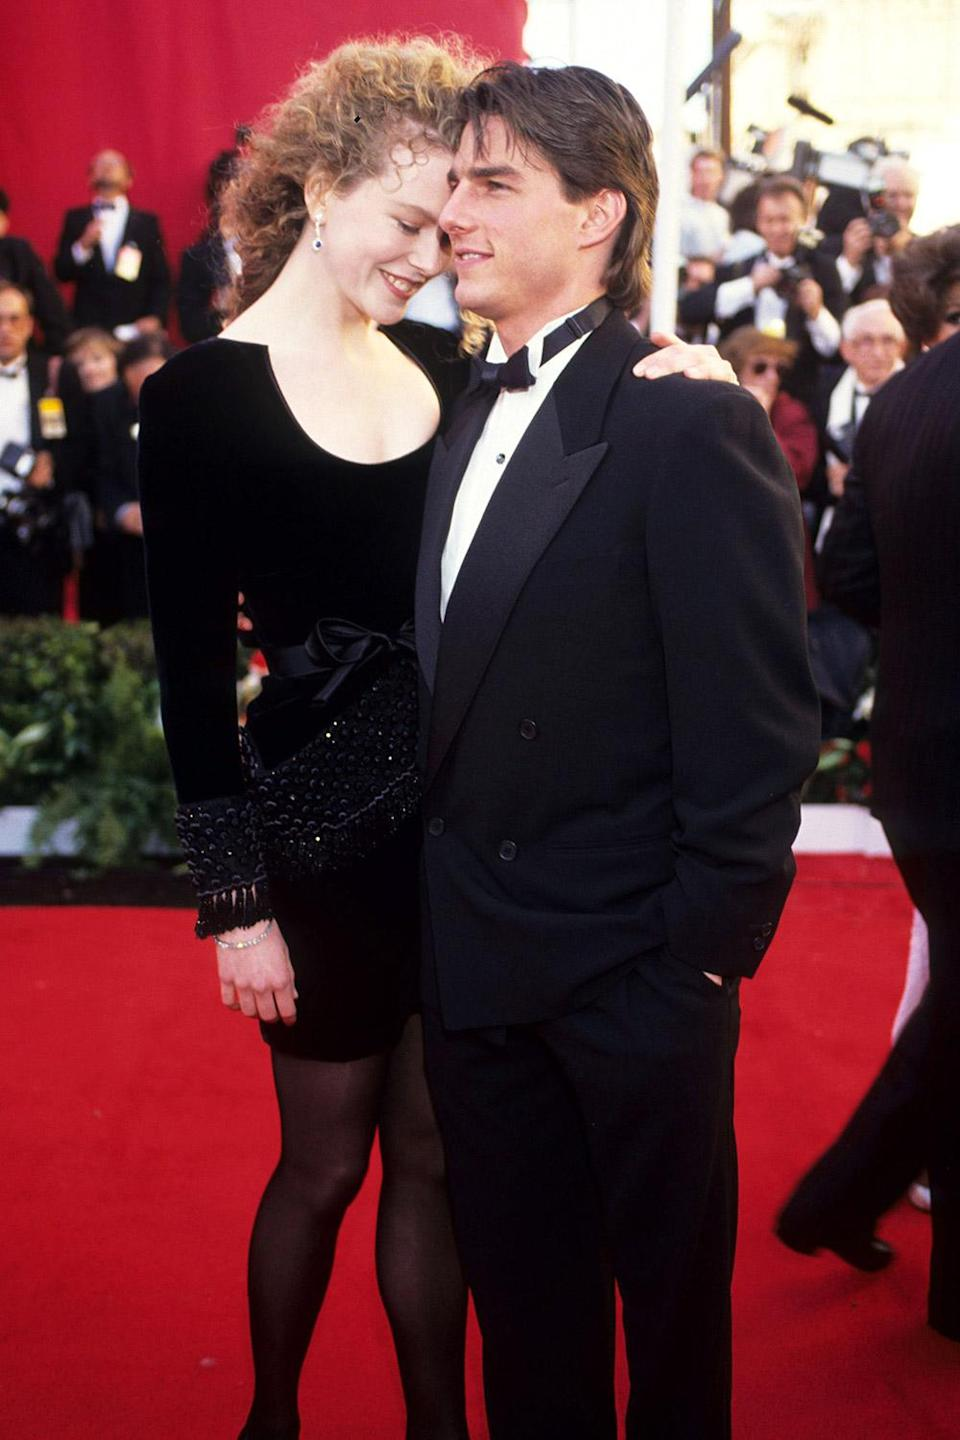 <p>Nicole Kidman and Tom Cruise — who were married from 1990 to 2001 — looked loved up on the red carpet. </p>